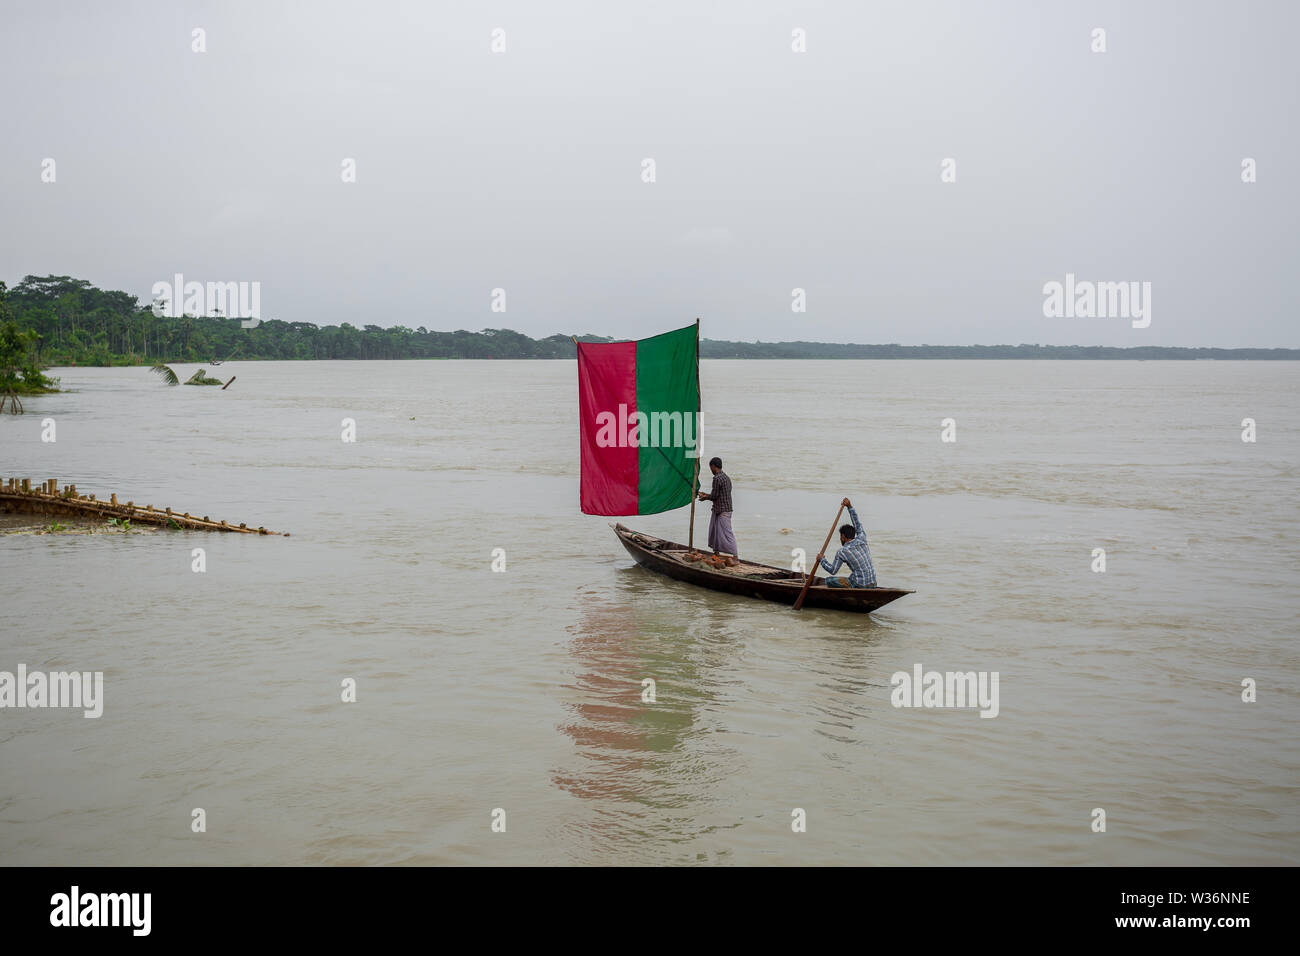 Bangladesh – June 27, 2015: A sailing liner, the water of the Kirtonkhola was flowing 5cm above the danger level of 2.55 metres at Rasulpur, Barisal D - Stock Image